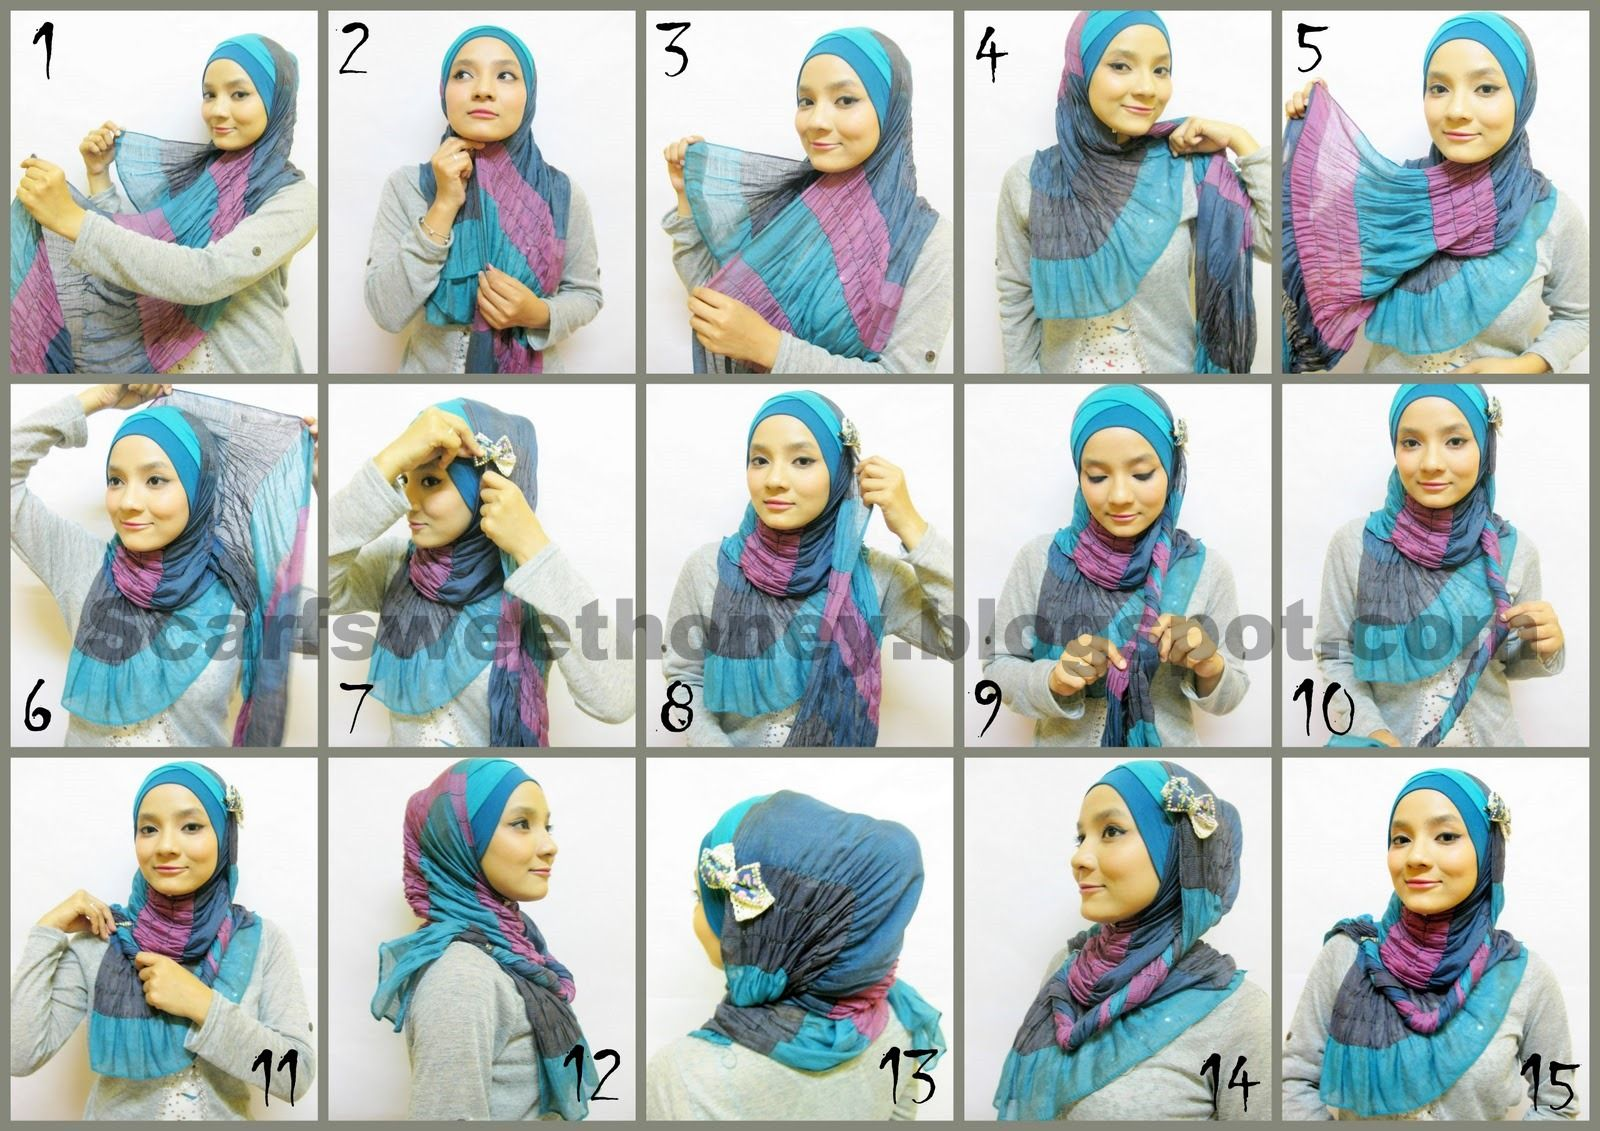 Httutorial Hijab Indonesia Mignonesia Islamic Fashion Part 2 How